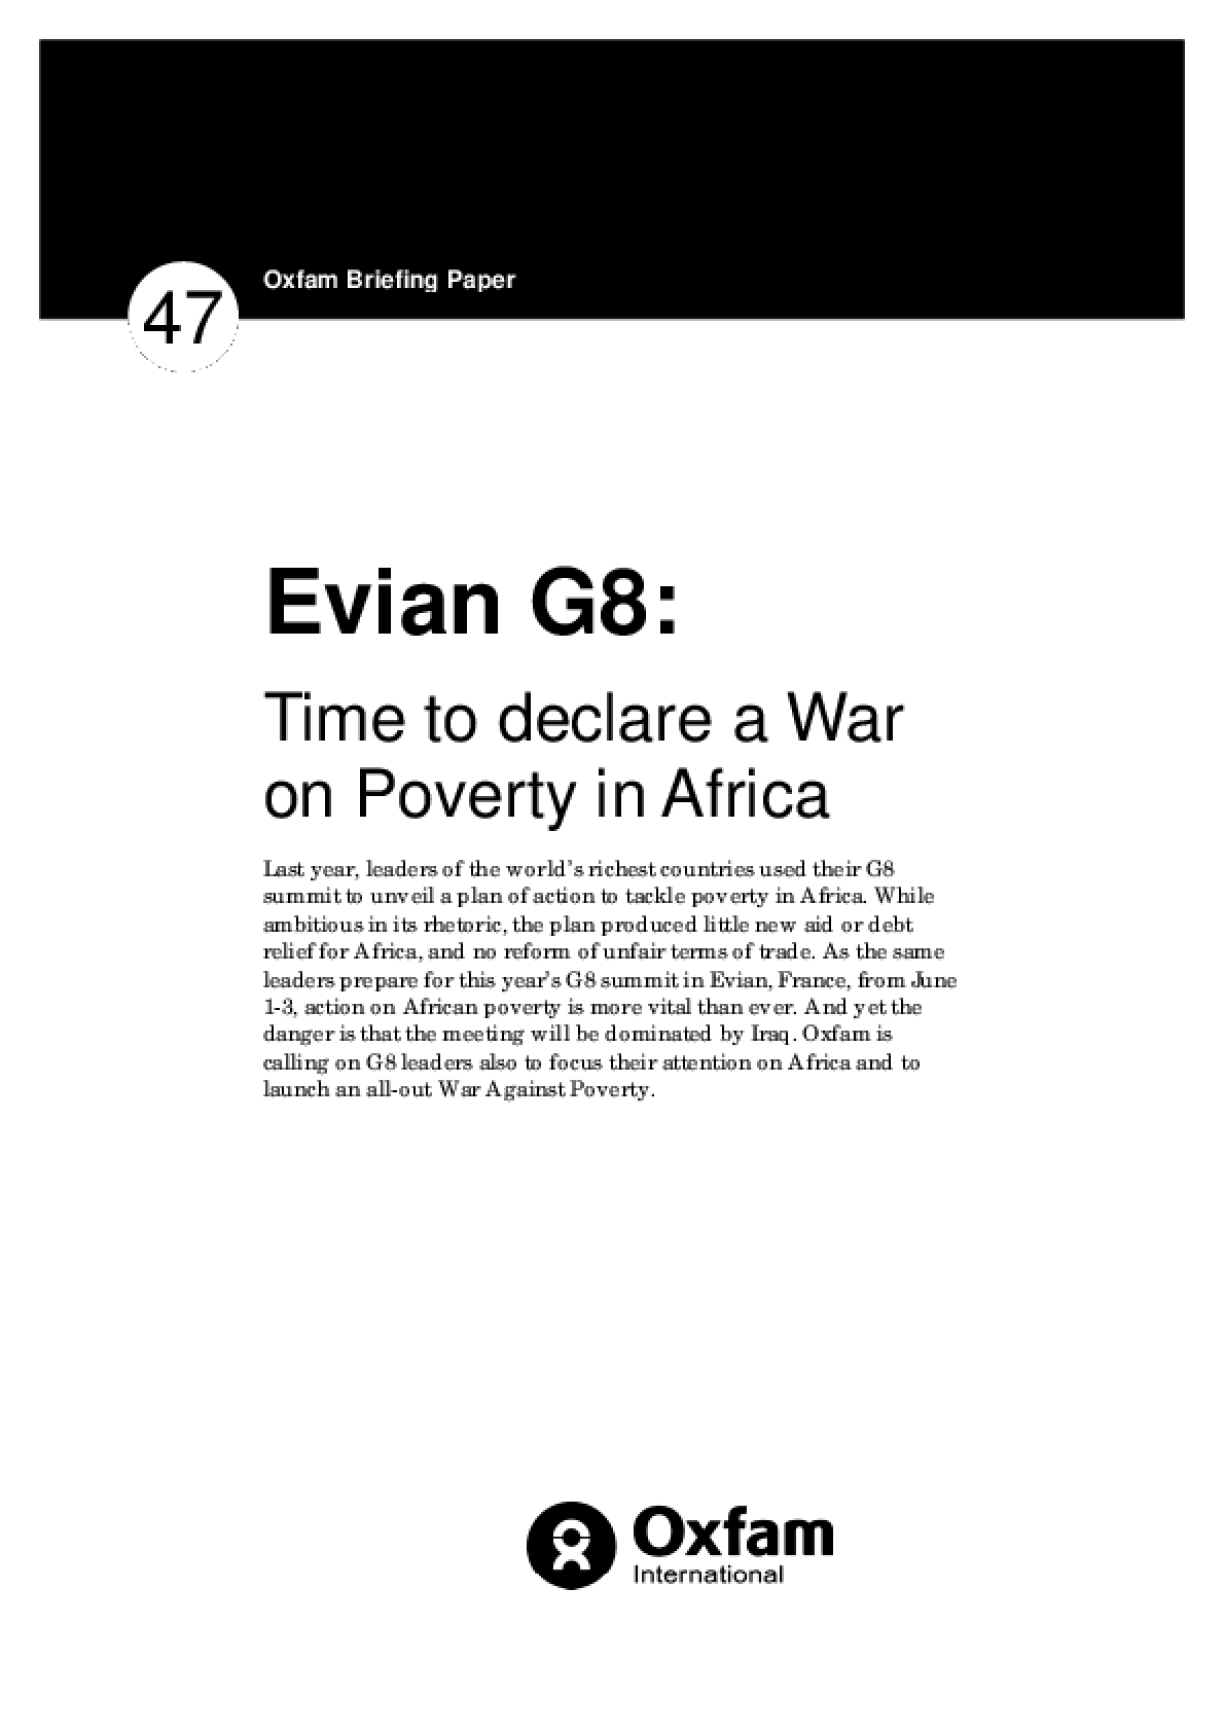 Evian G8: Time to Declare a War on Poverty in Africa